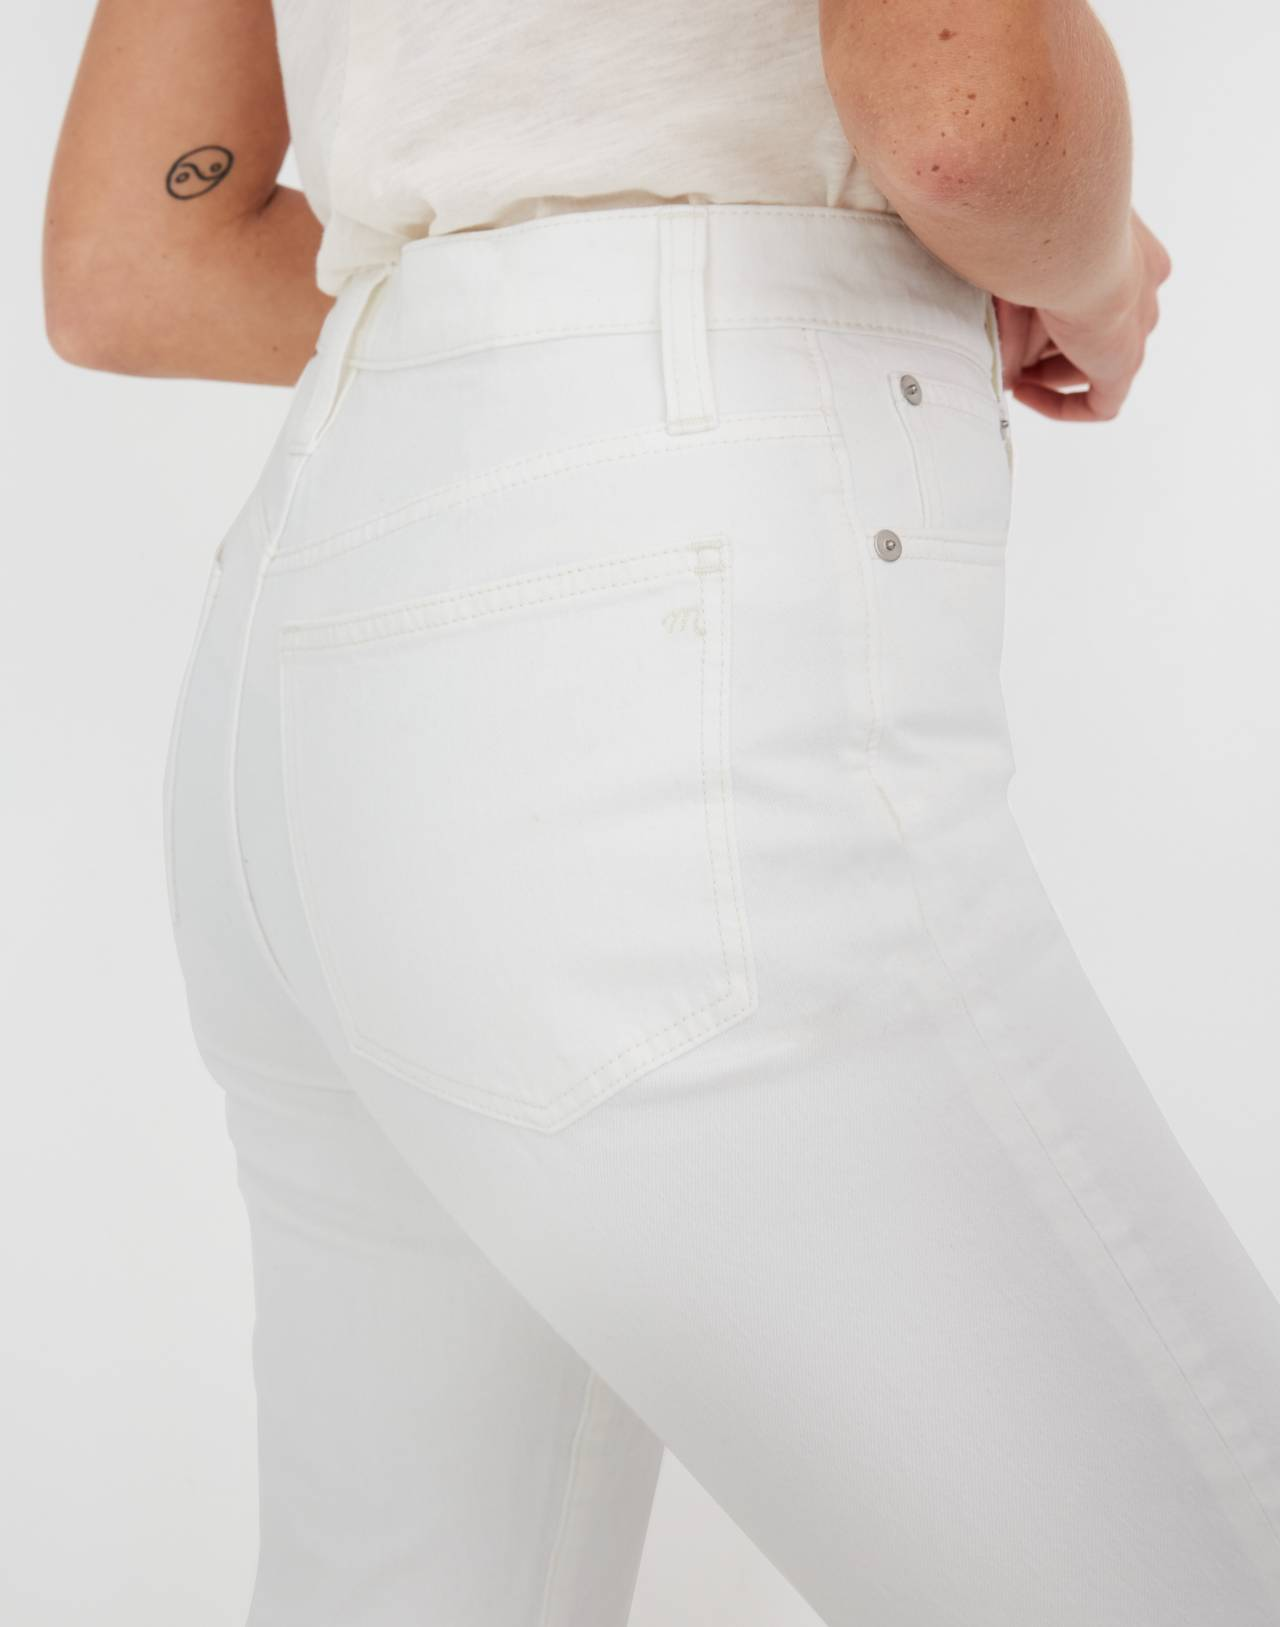 Classic Straight Jeans in Tile White in tile white image 2